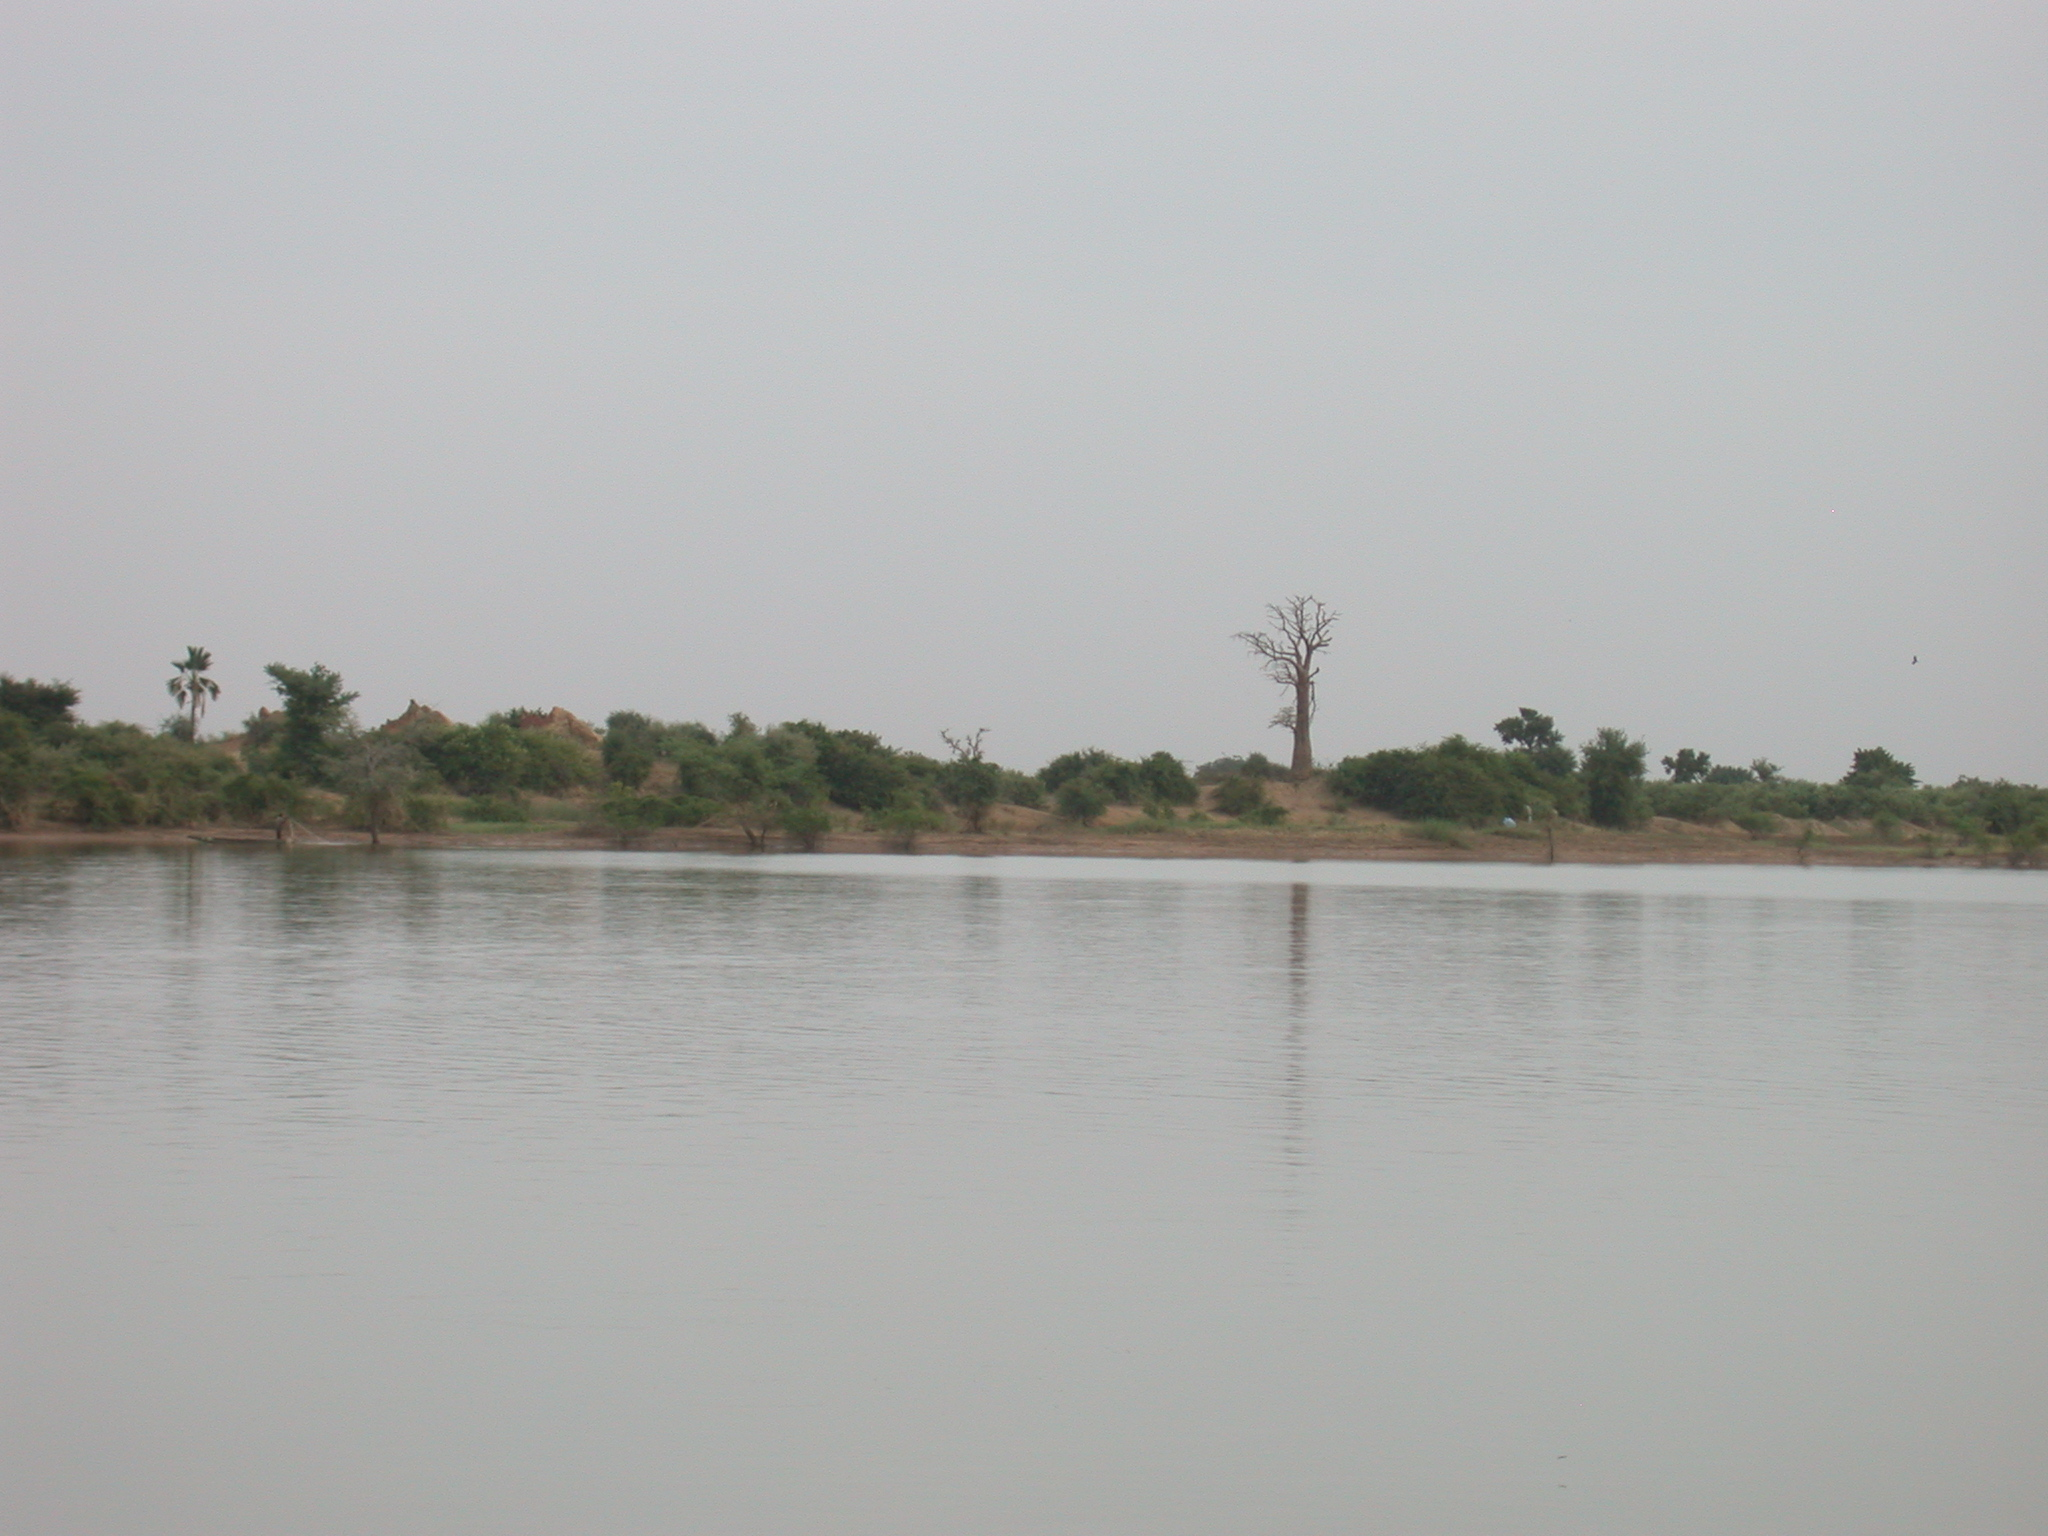 Niger River Crossing From Jenne to Bandiagara, Mali